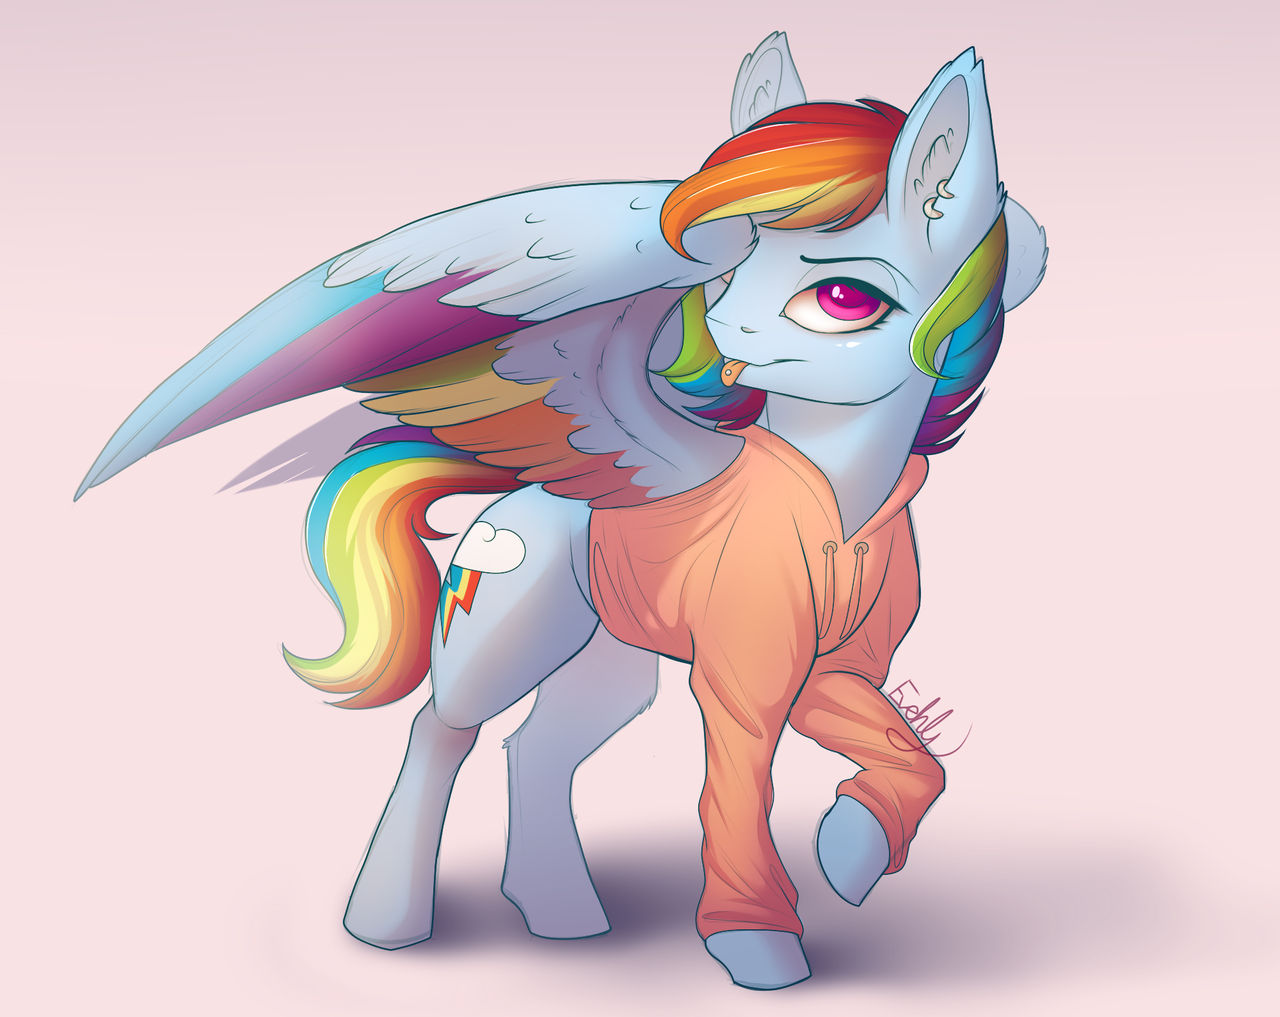 When Was the Last Time I Drew Rainbow Dash?